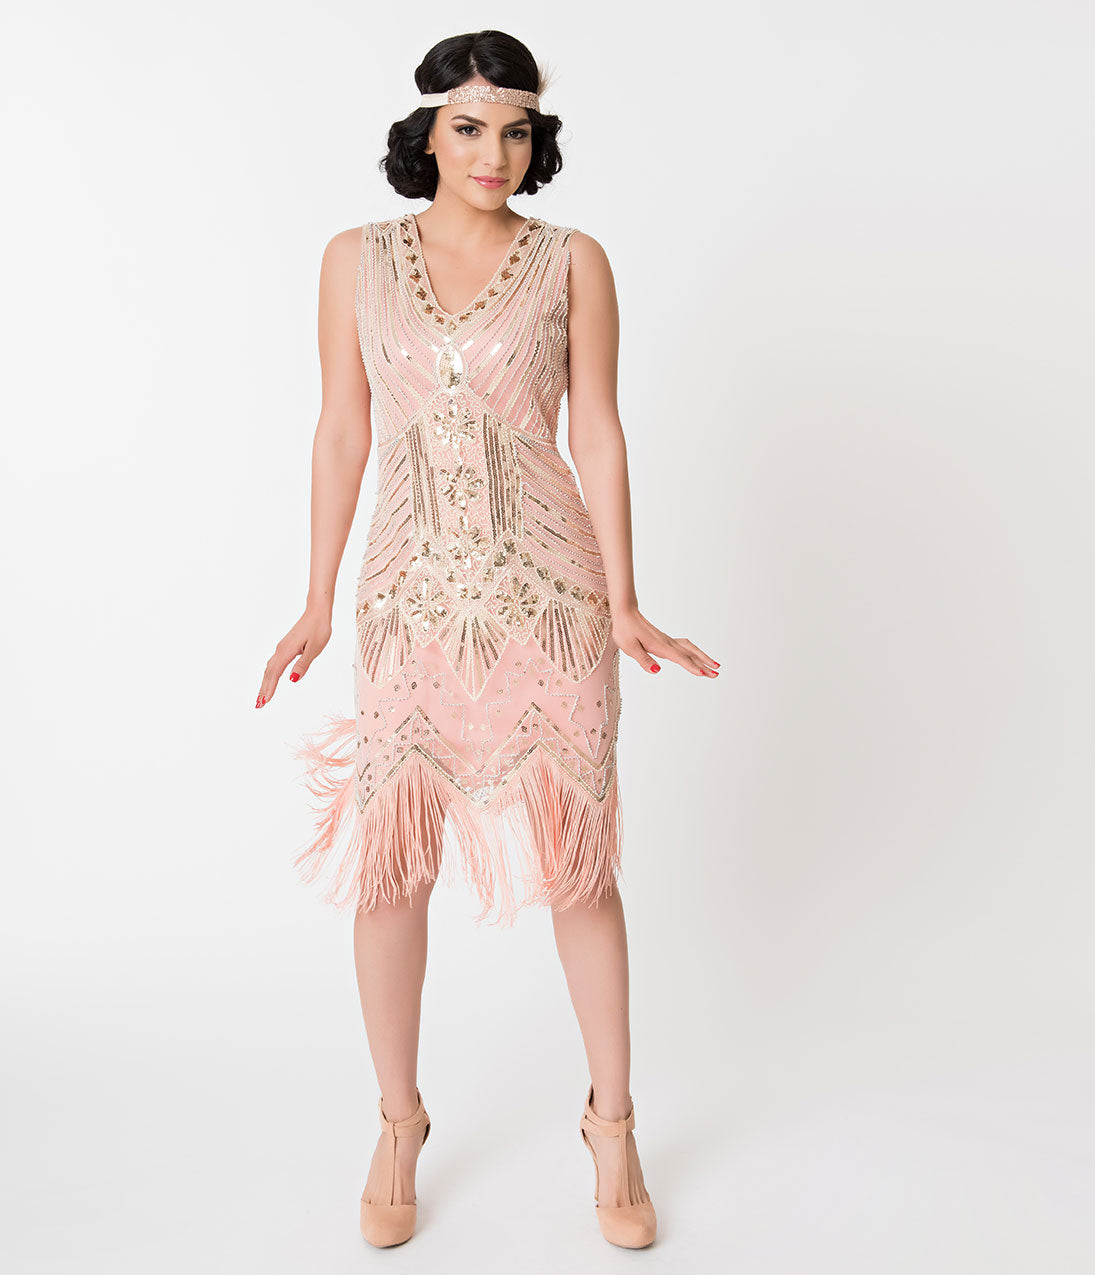 Flapper Costumes, Flapper Girl Costume Unique Vintage 1920S Deco Peach  Gold Veronique Fringe Flapper Dress $59.00 AT vintagedancer.com